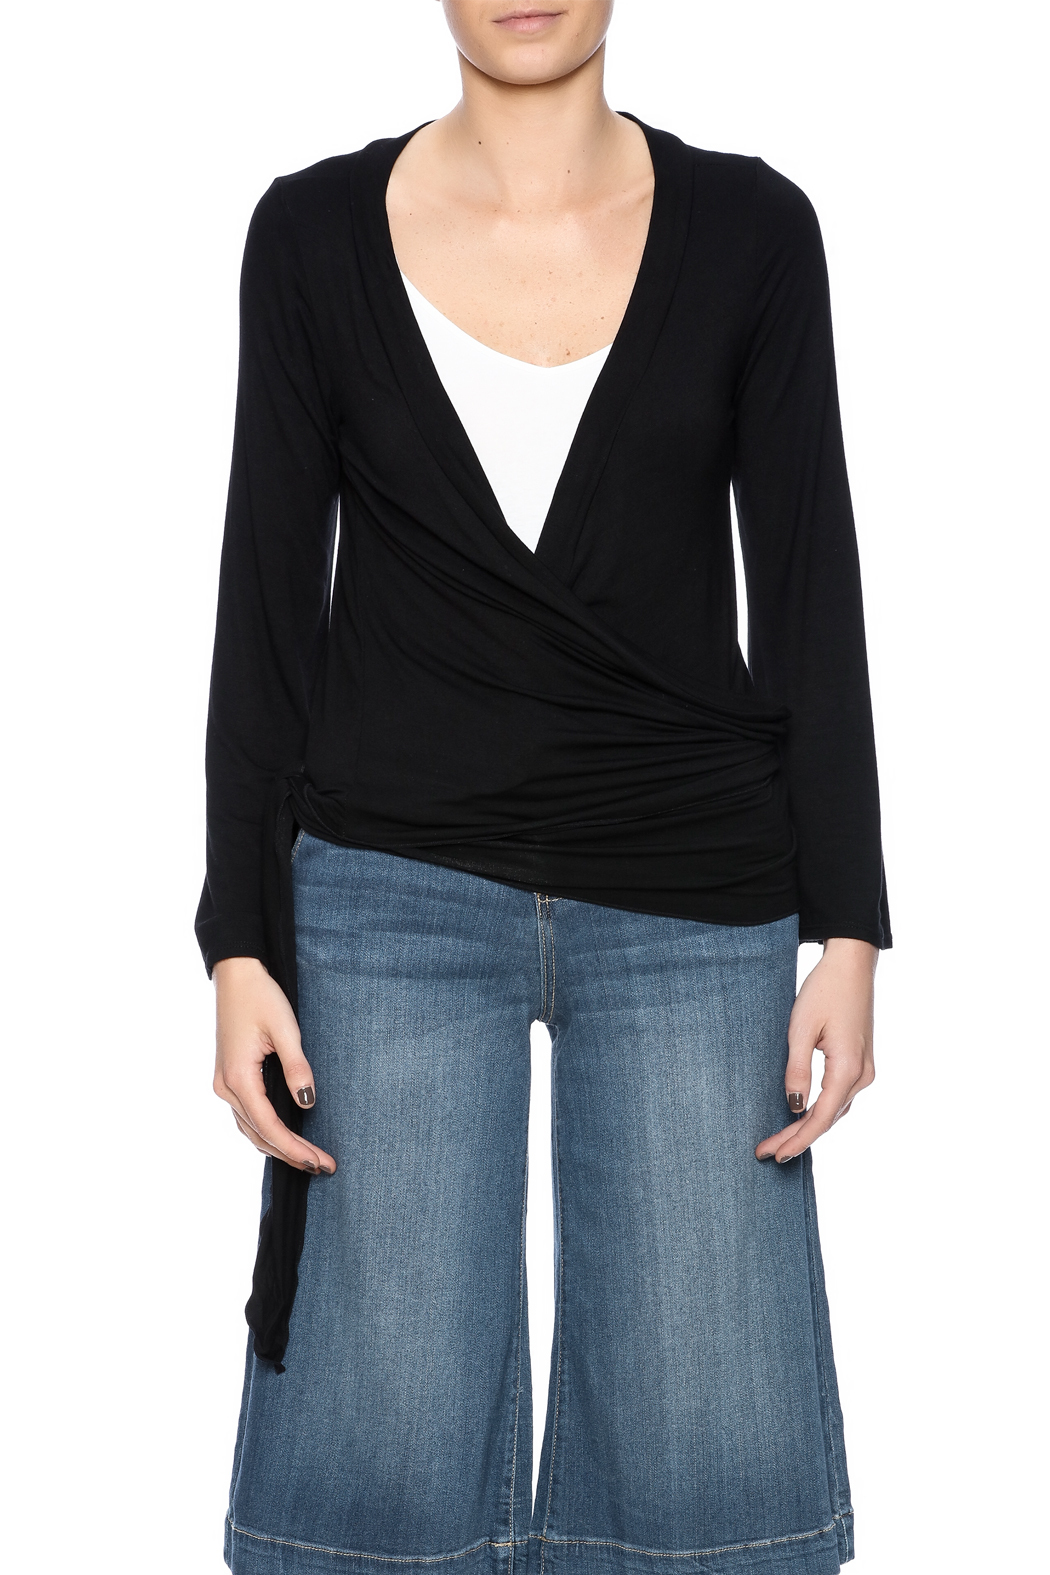 Clea Ray Perfect Wrap Top - Side Cropped Image